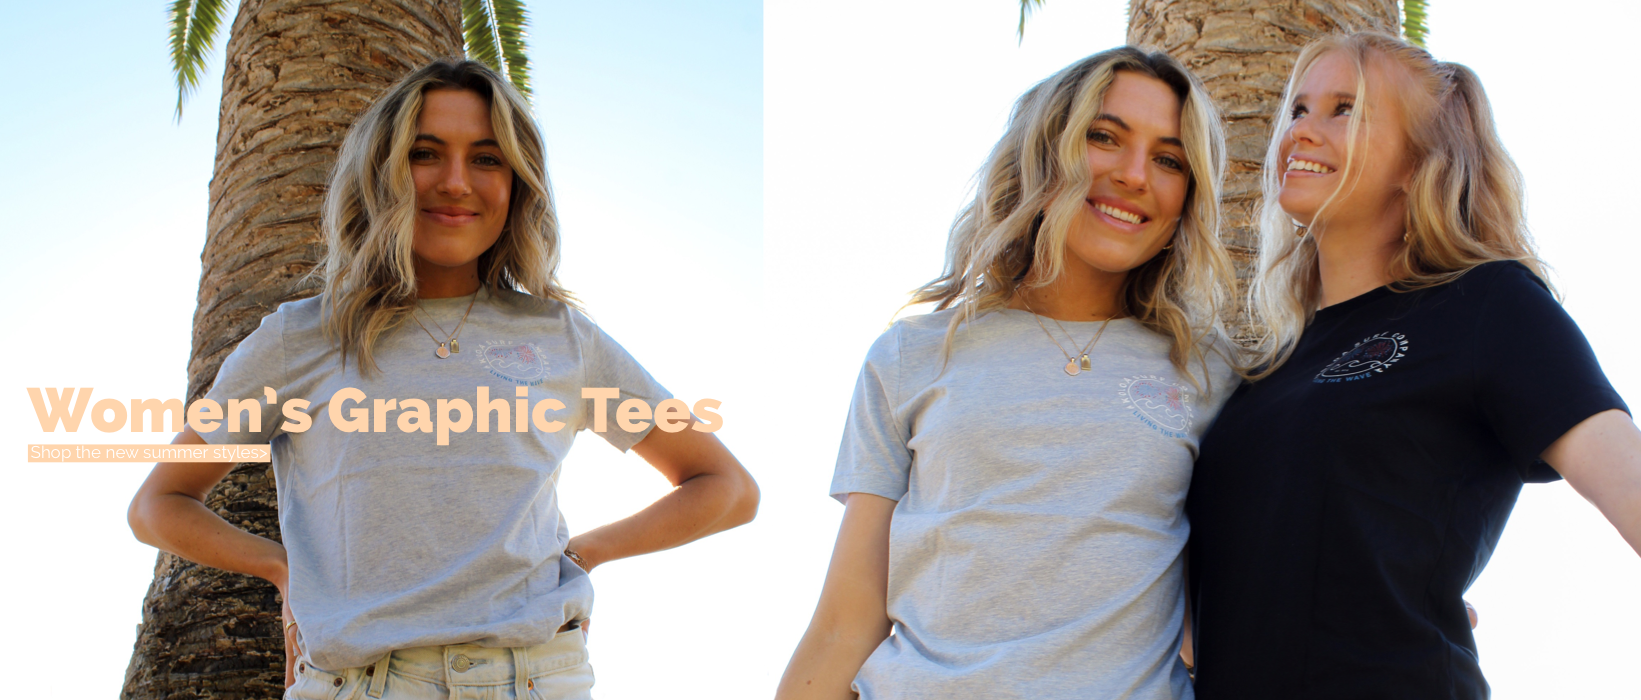 Koloa Surf Company Women's Graphic Tees. Shop the new summer styles now for women.